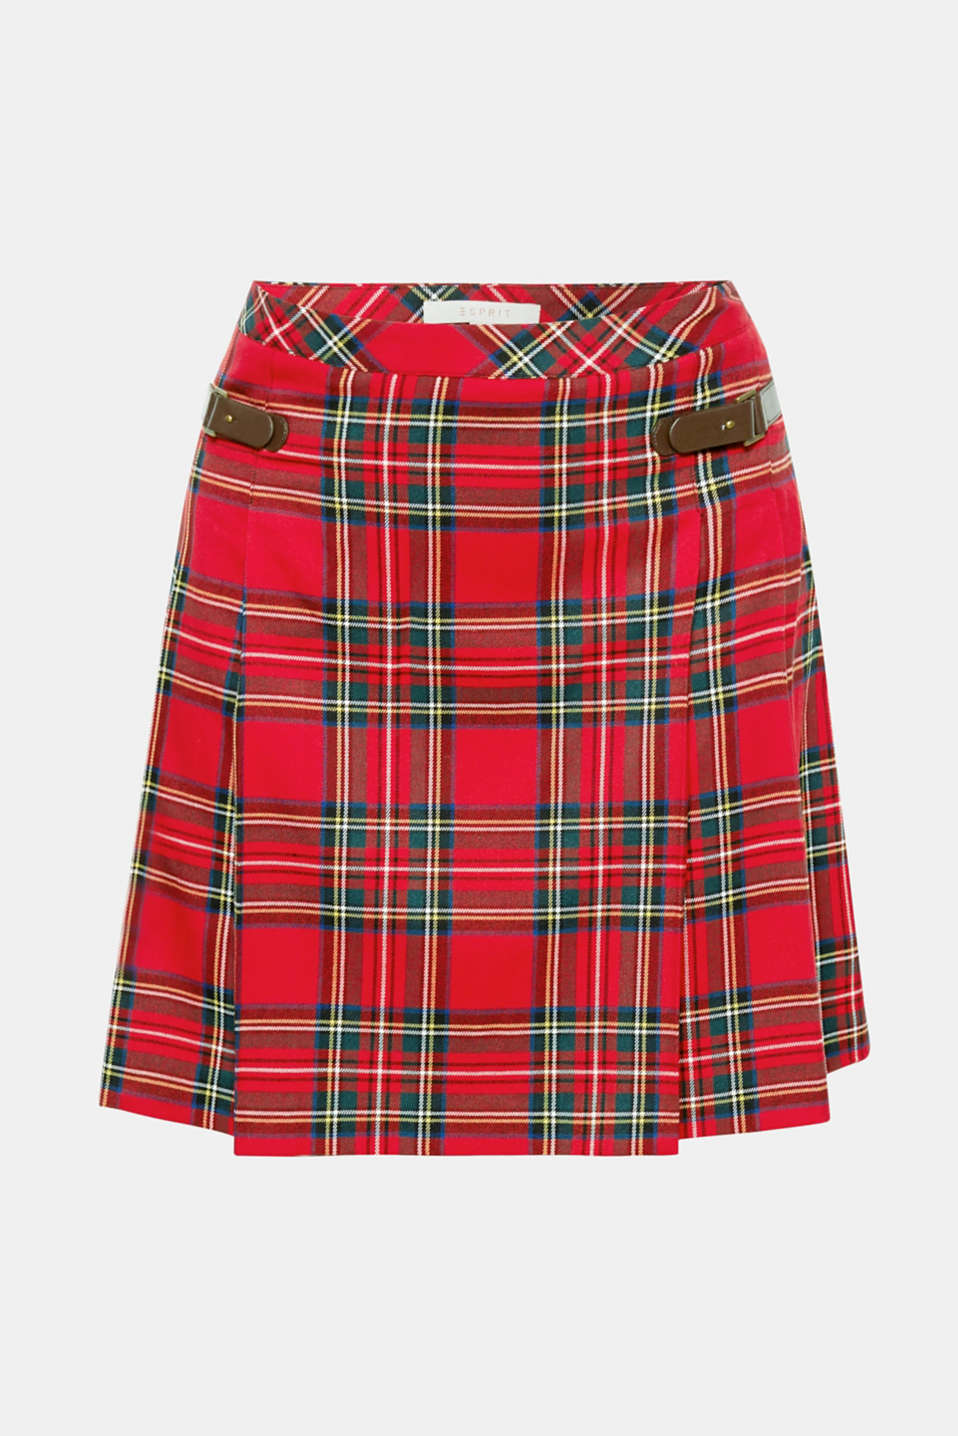 Stylish college look: Thanks to the classic check pattern and two decorative straps in faux leather, this short pleated skirt with added stretch for comfort looks totally authentic!